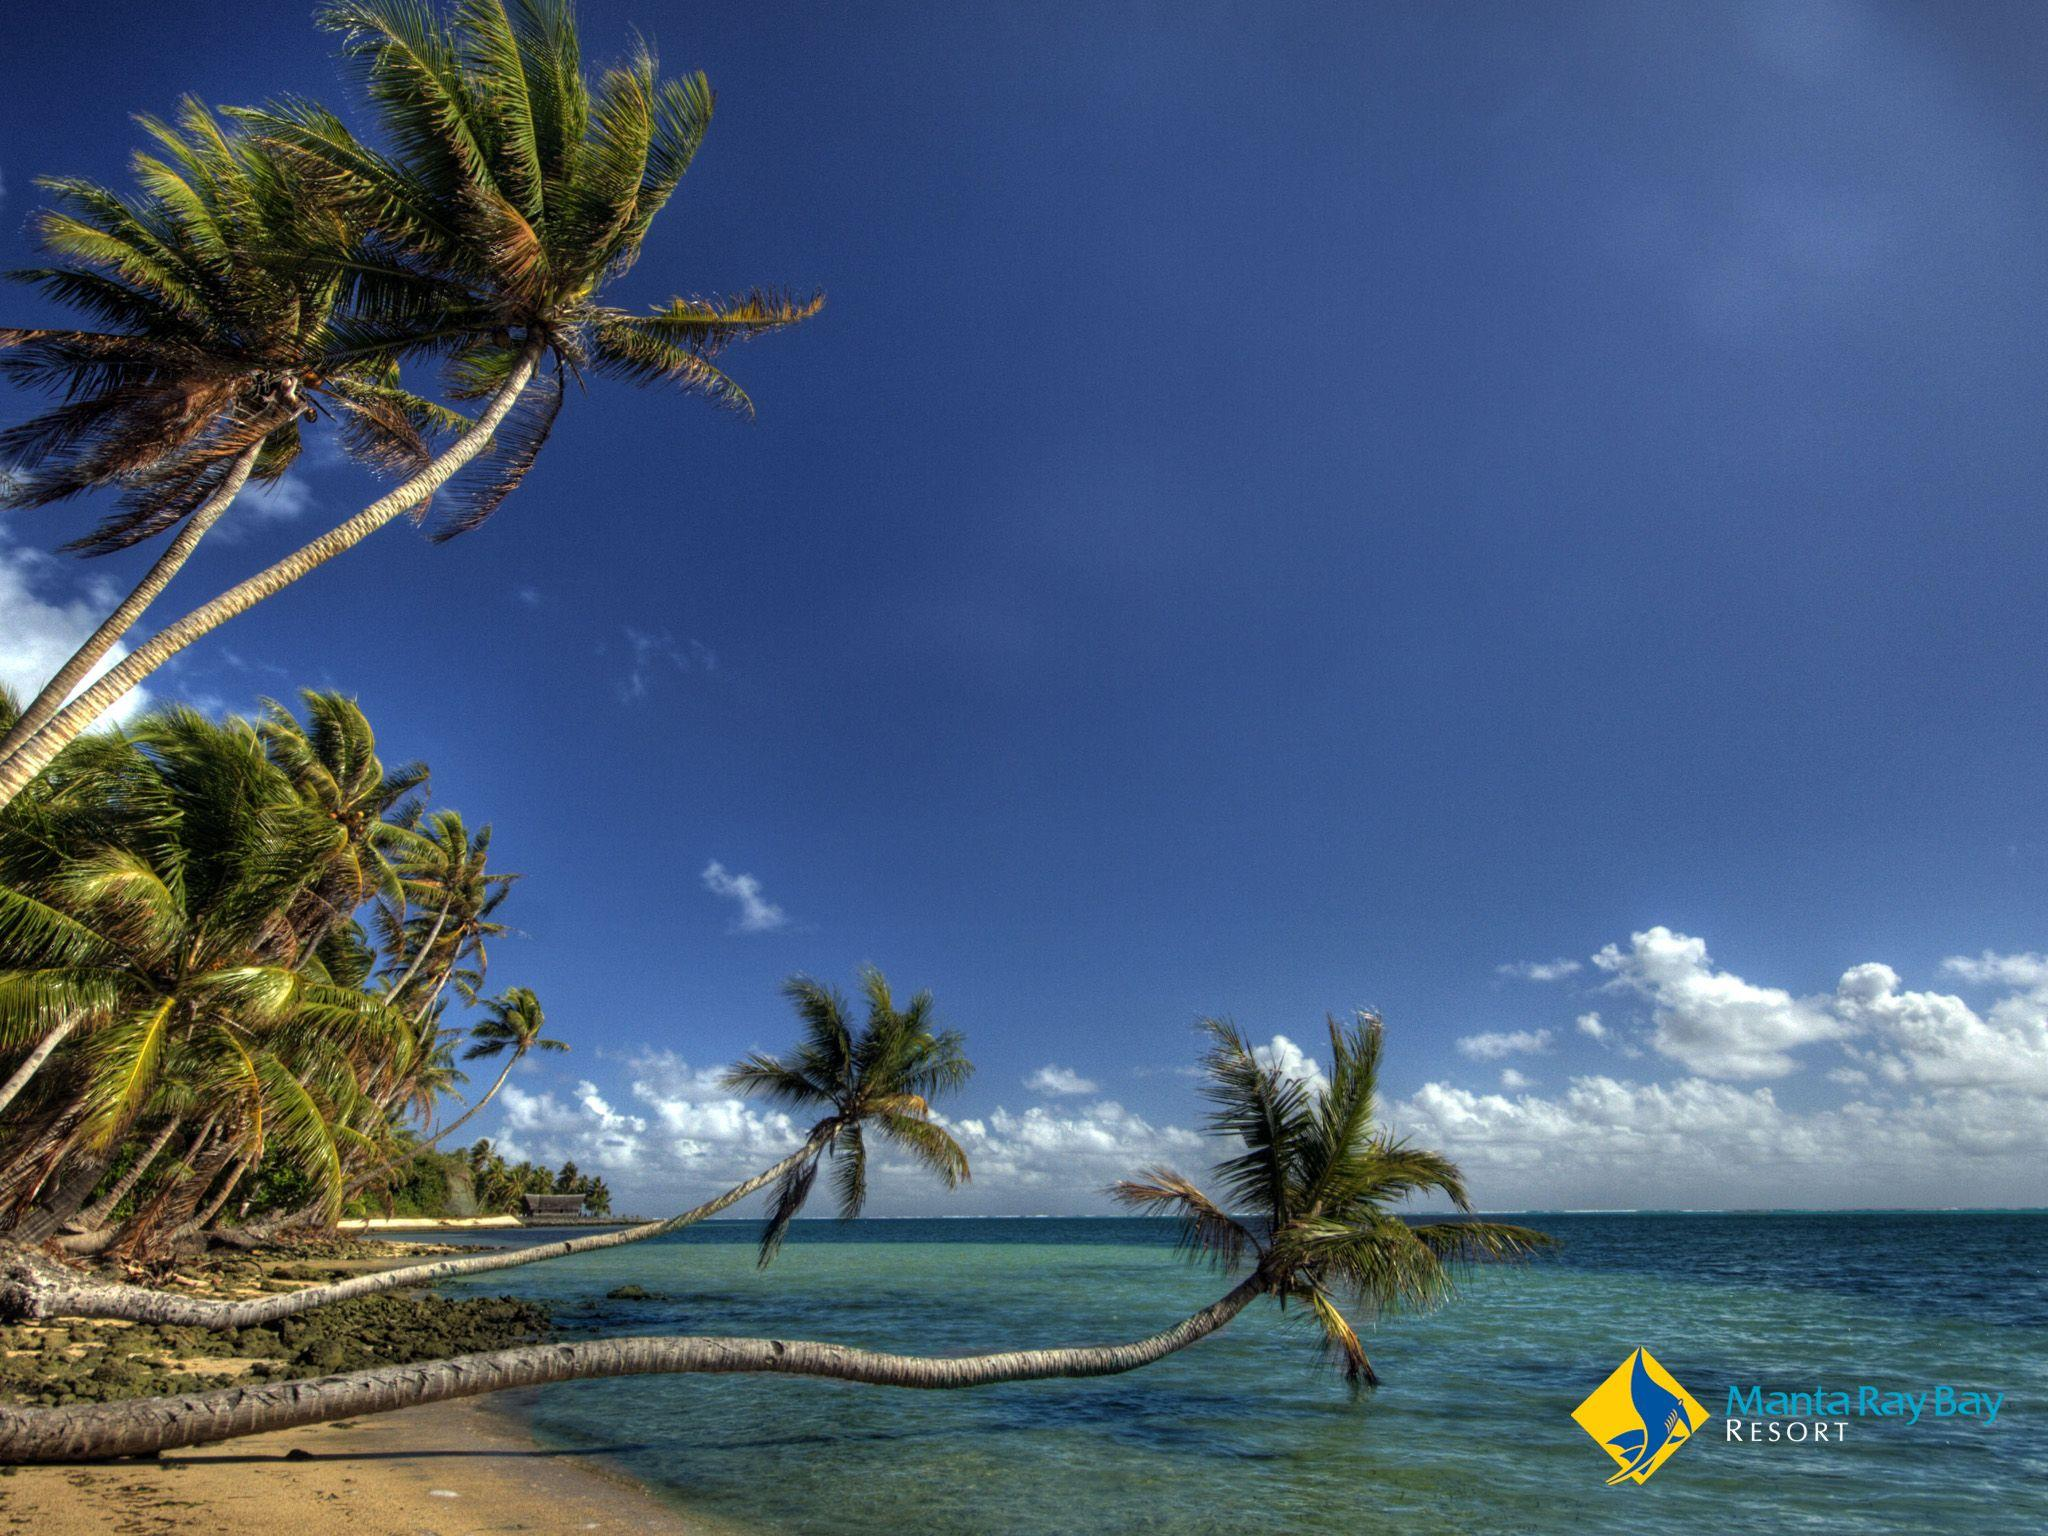 Manta Ray Bay Wallpaper Gallery | Manta Ray Bay Resort & Yap ...